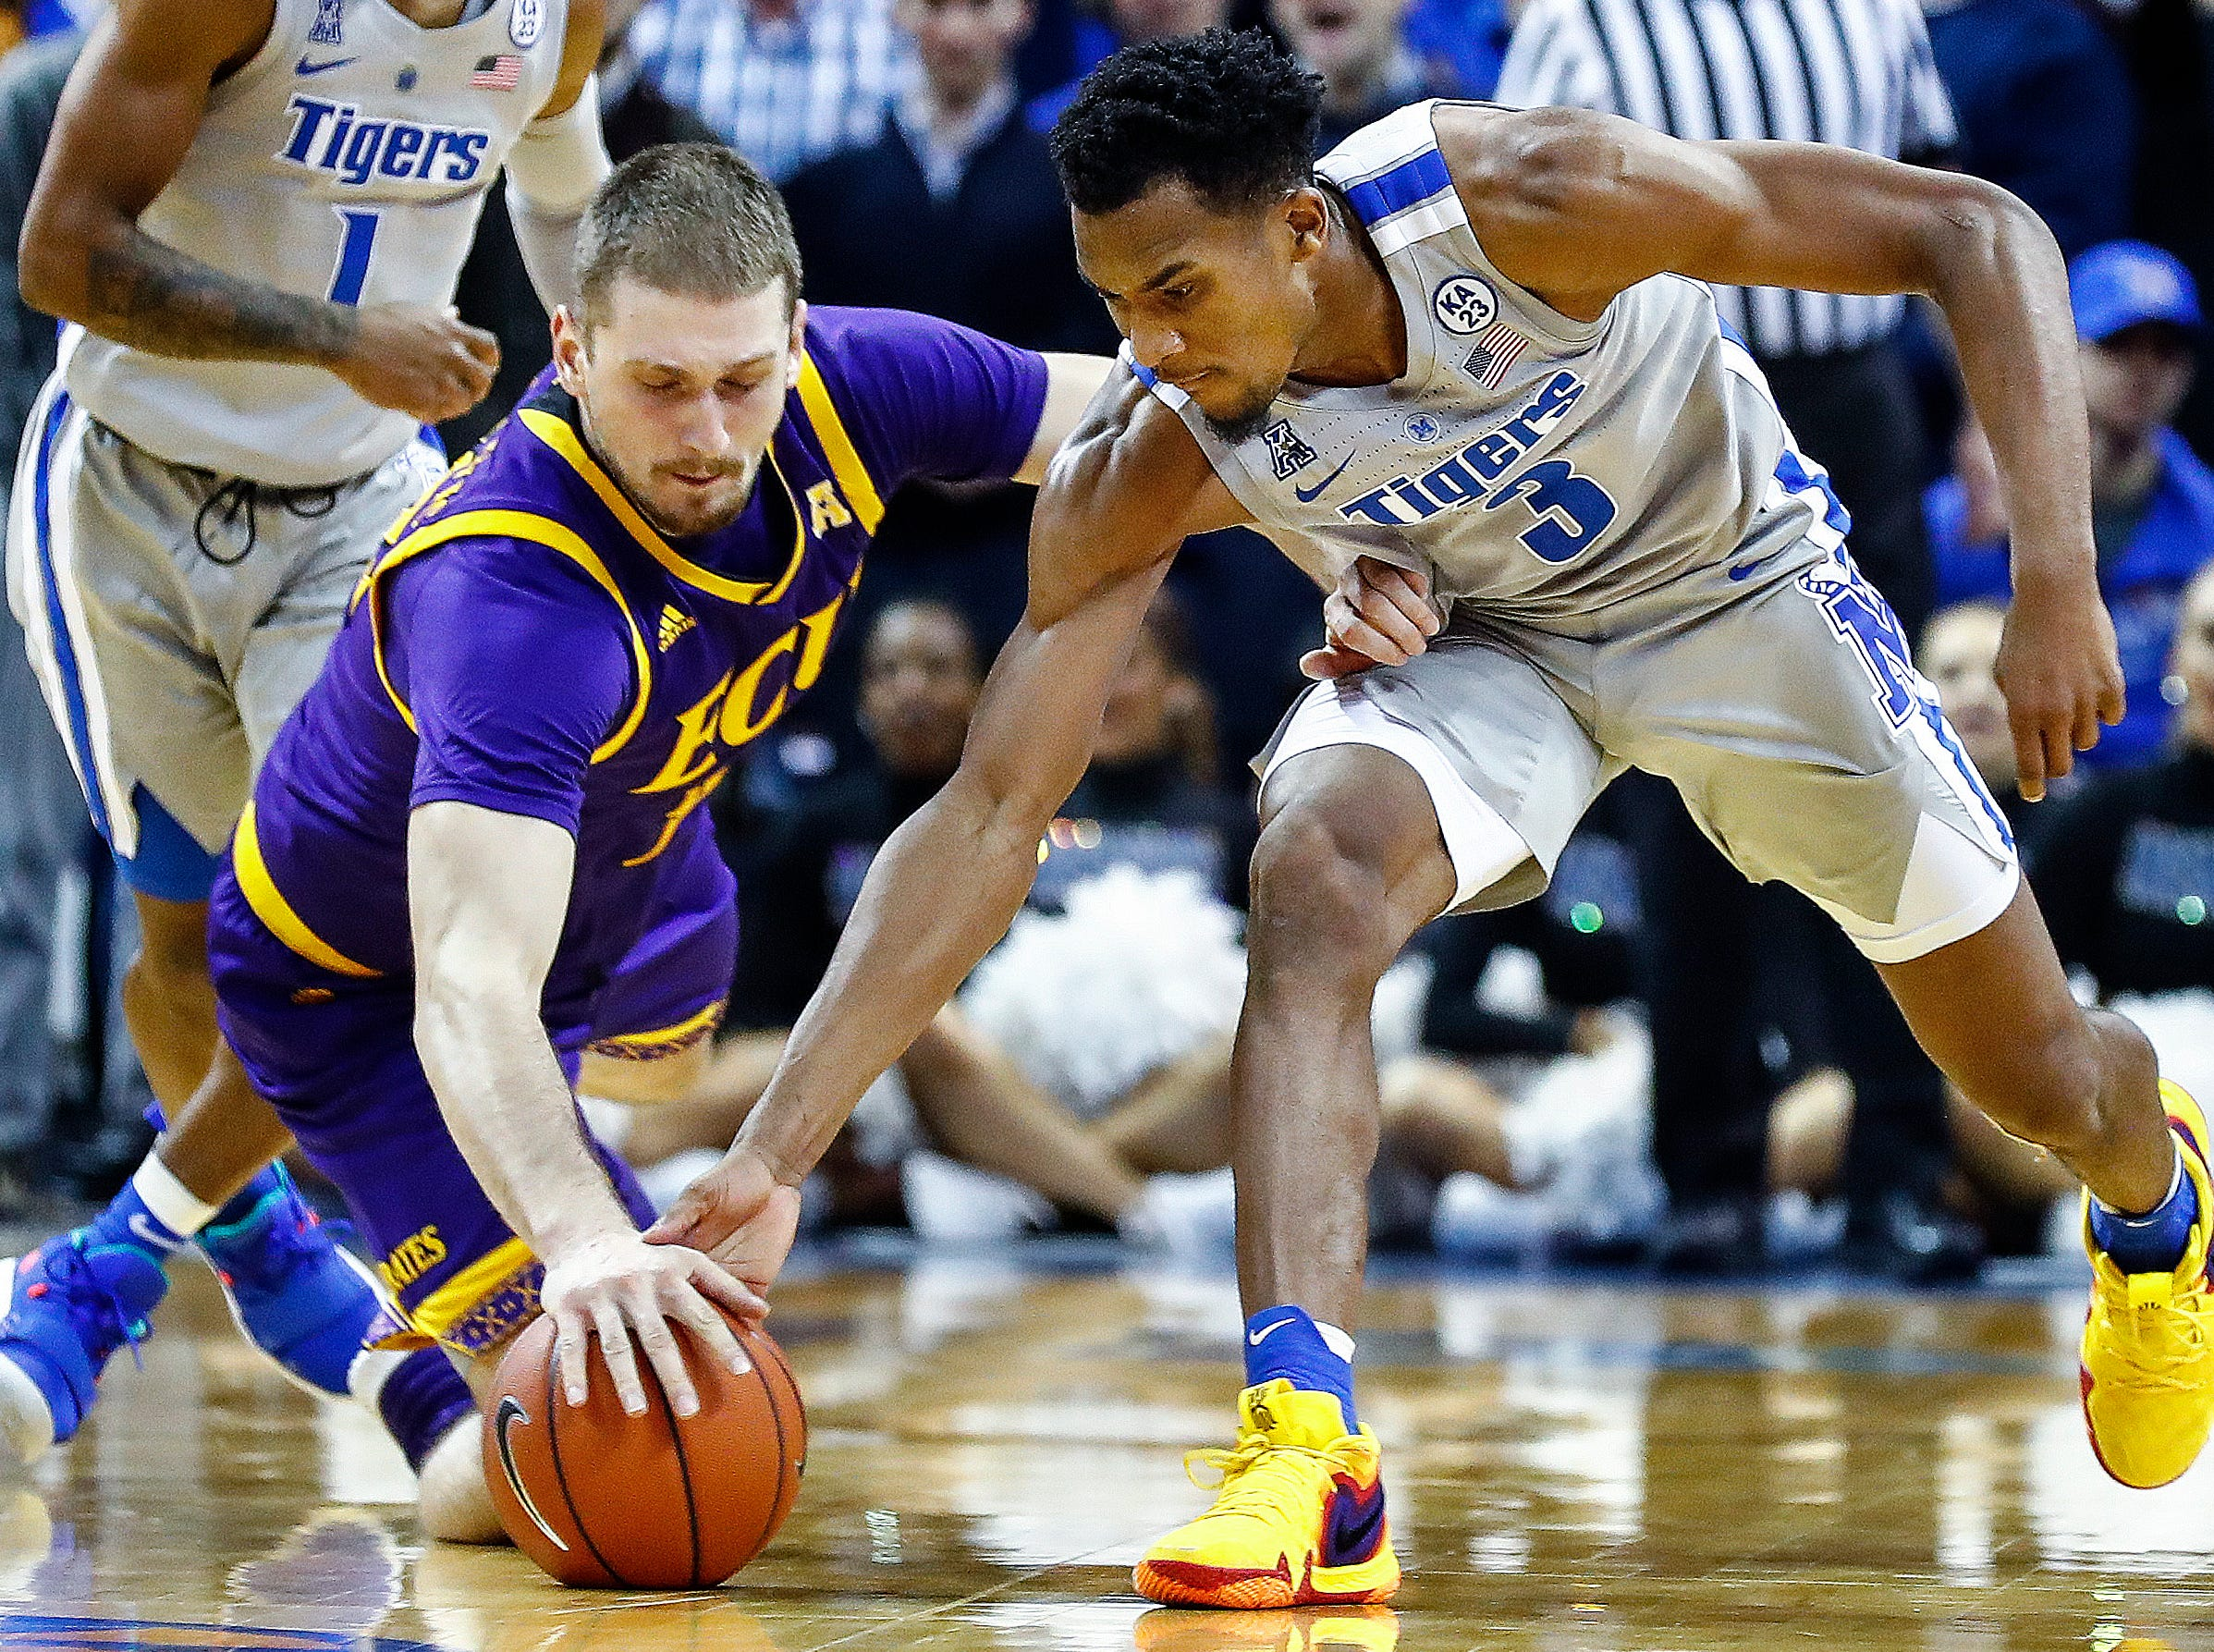 Memphis guard Jeremiah Martin (right) battles ECU forward Dimitrije Spasojevic (left) for a loose ball during action at the FedExForum, Thursday, January 10, 2019.